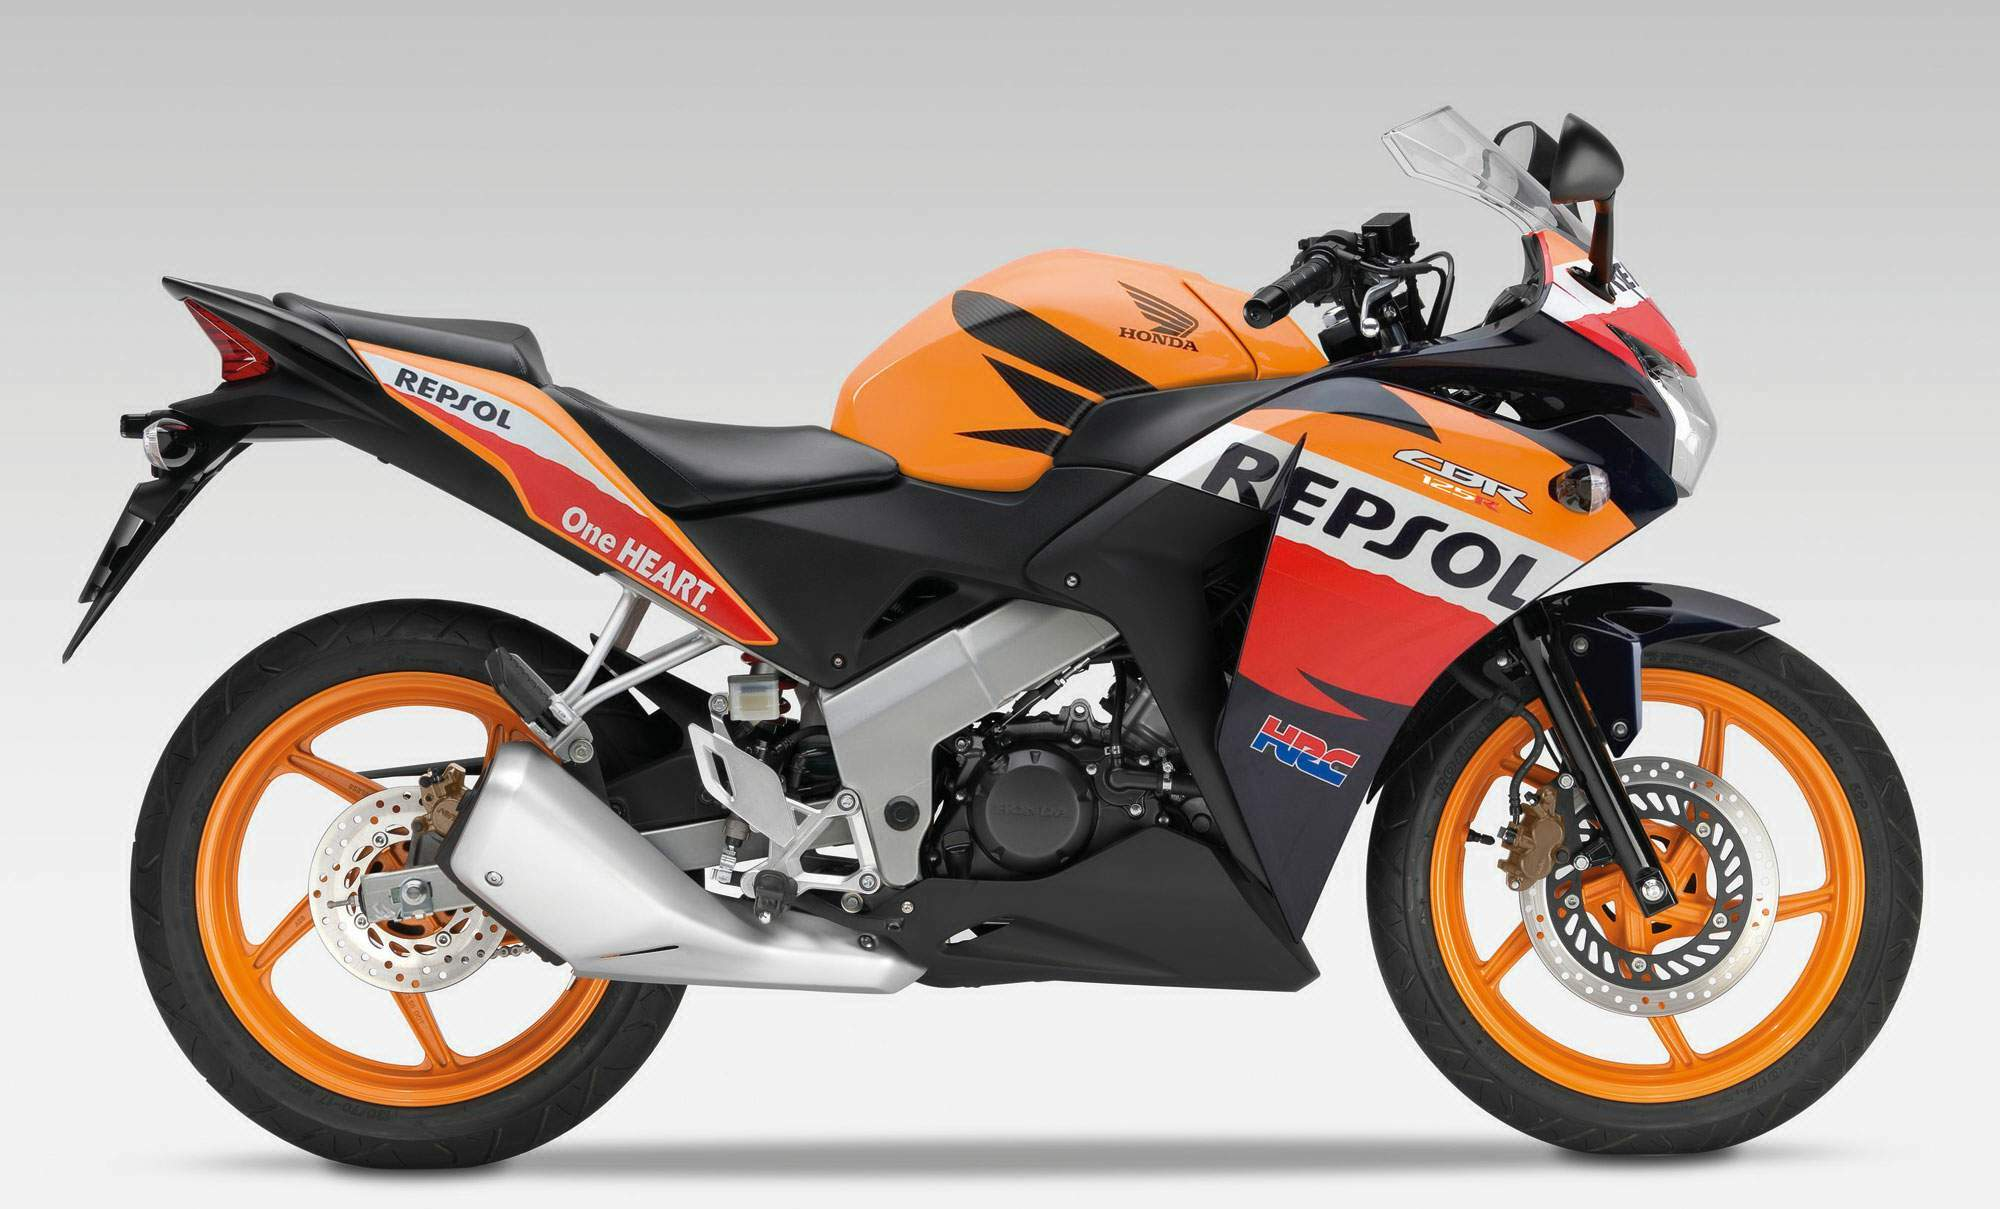 honda cbr 125r repsol 2012 2013 2014 2015 2016 autoevolution. Black Bedroom Furniture Sets. Home Design Ideas